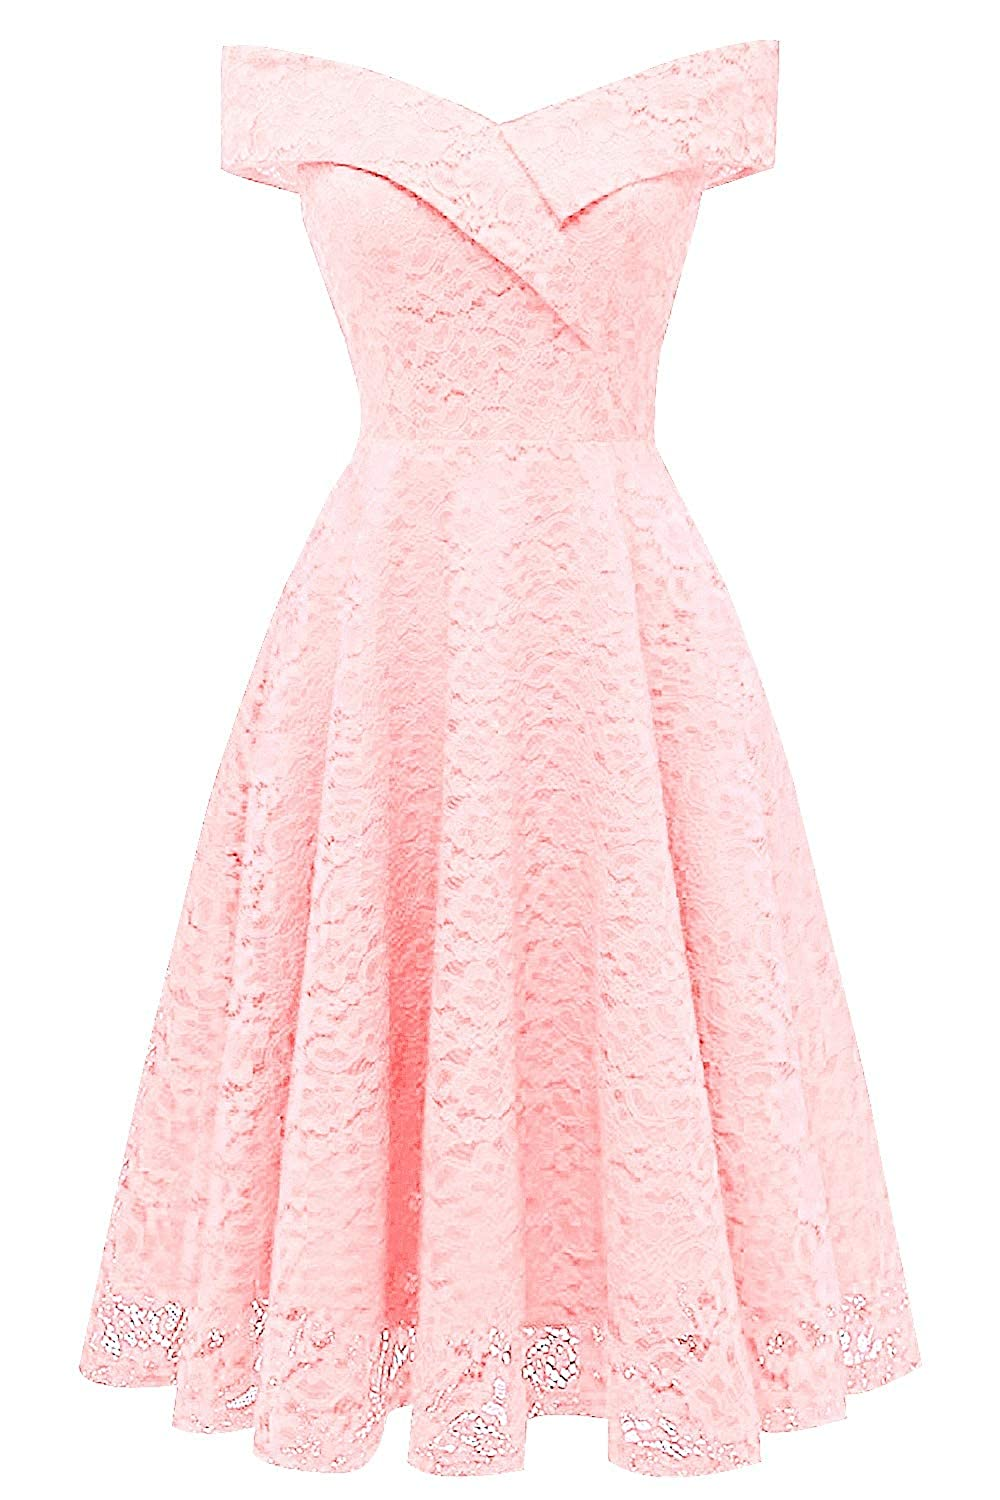 bluesh Pink MorySong Women's Lace Off The Shoulder Knee Length Cocktail Homecoming Dress